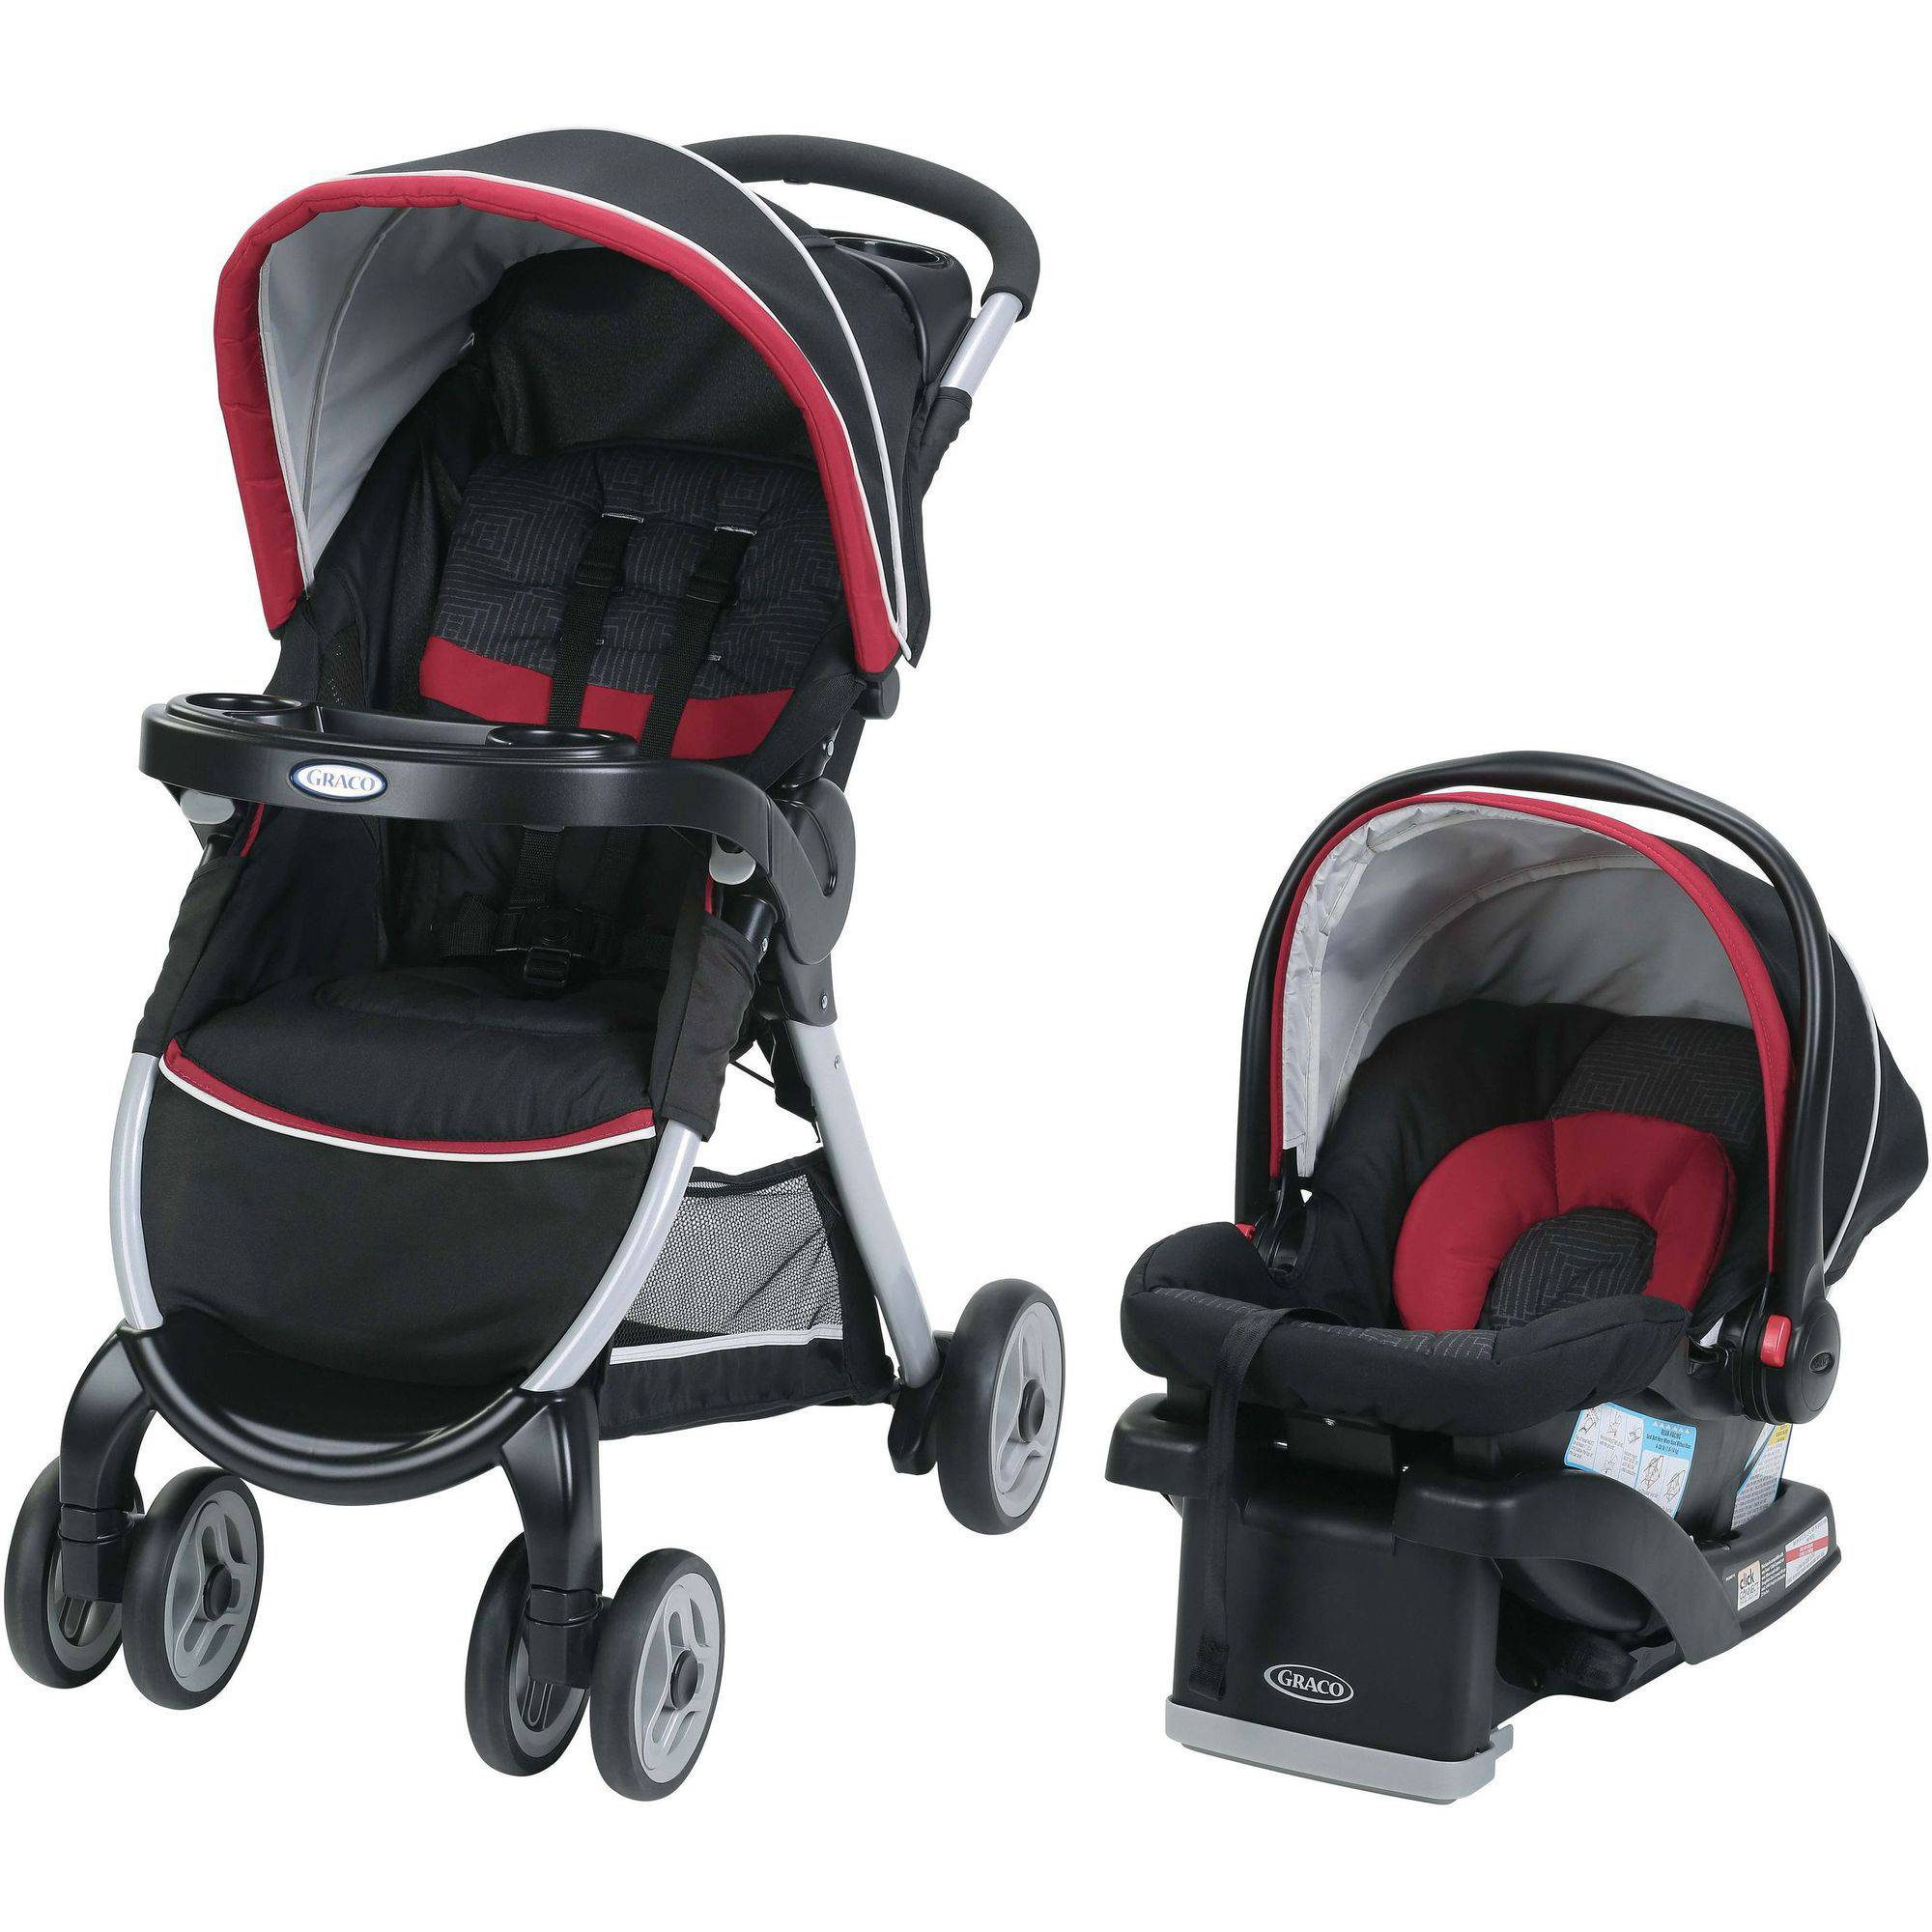 Graco FastAction Fold Click Connect Travel System, Weave